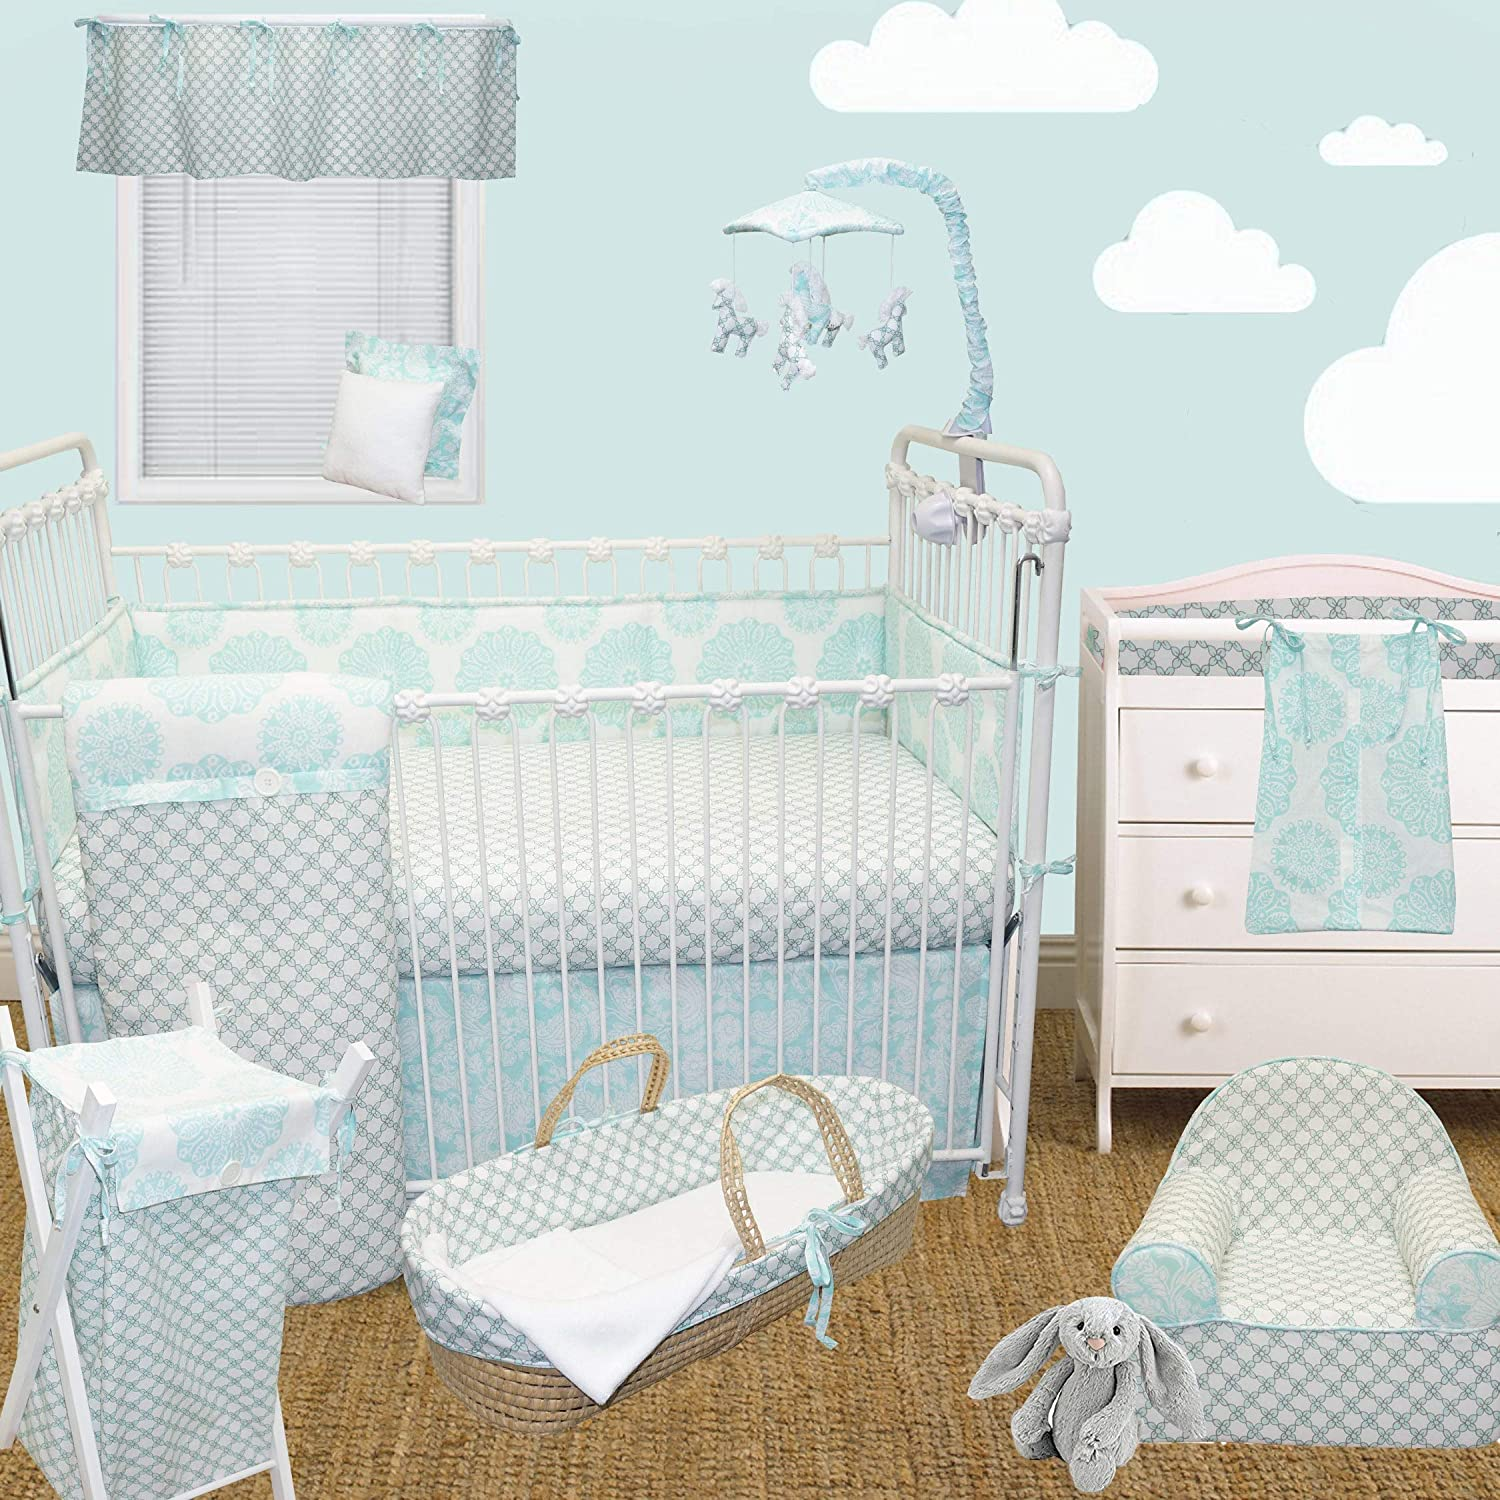 Cotton Tale Designs Mobile Periwinkle 1-Pack